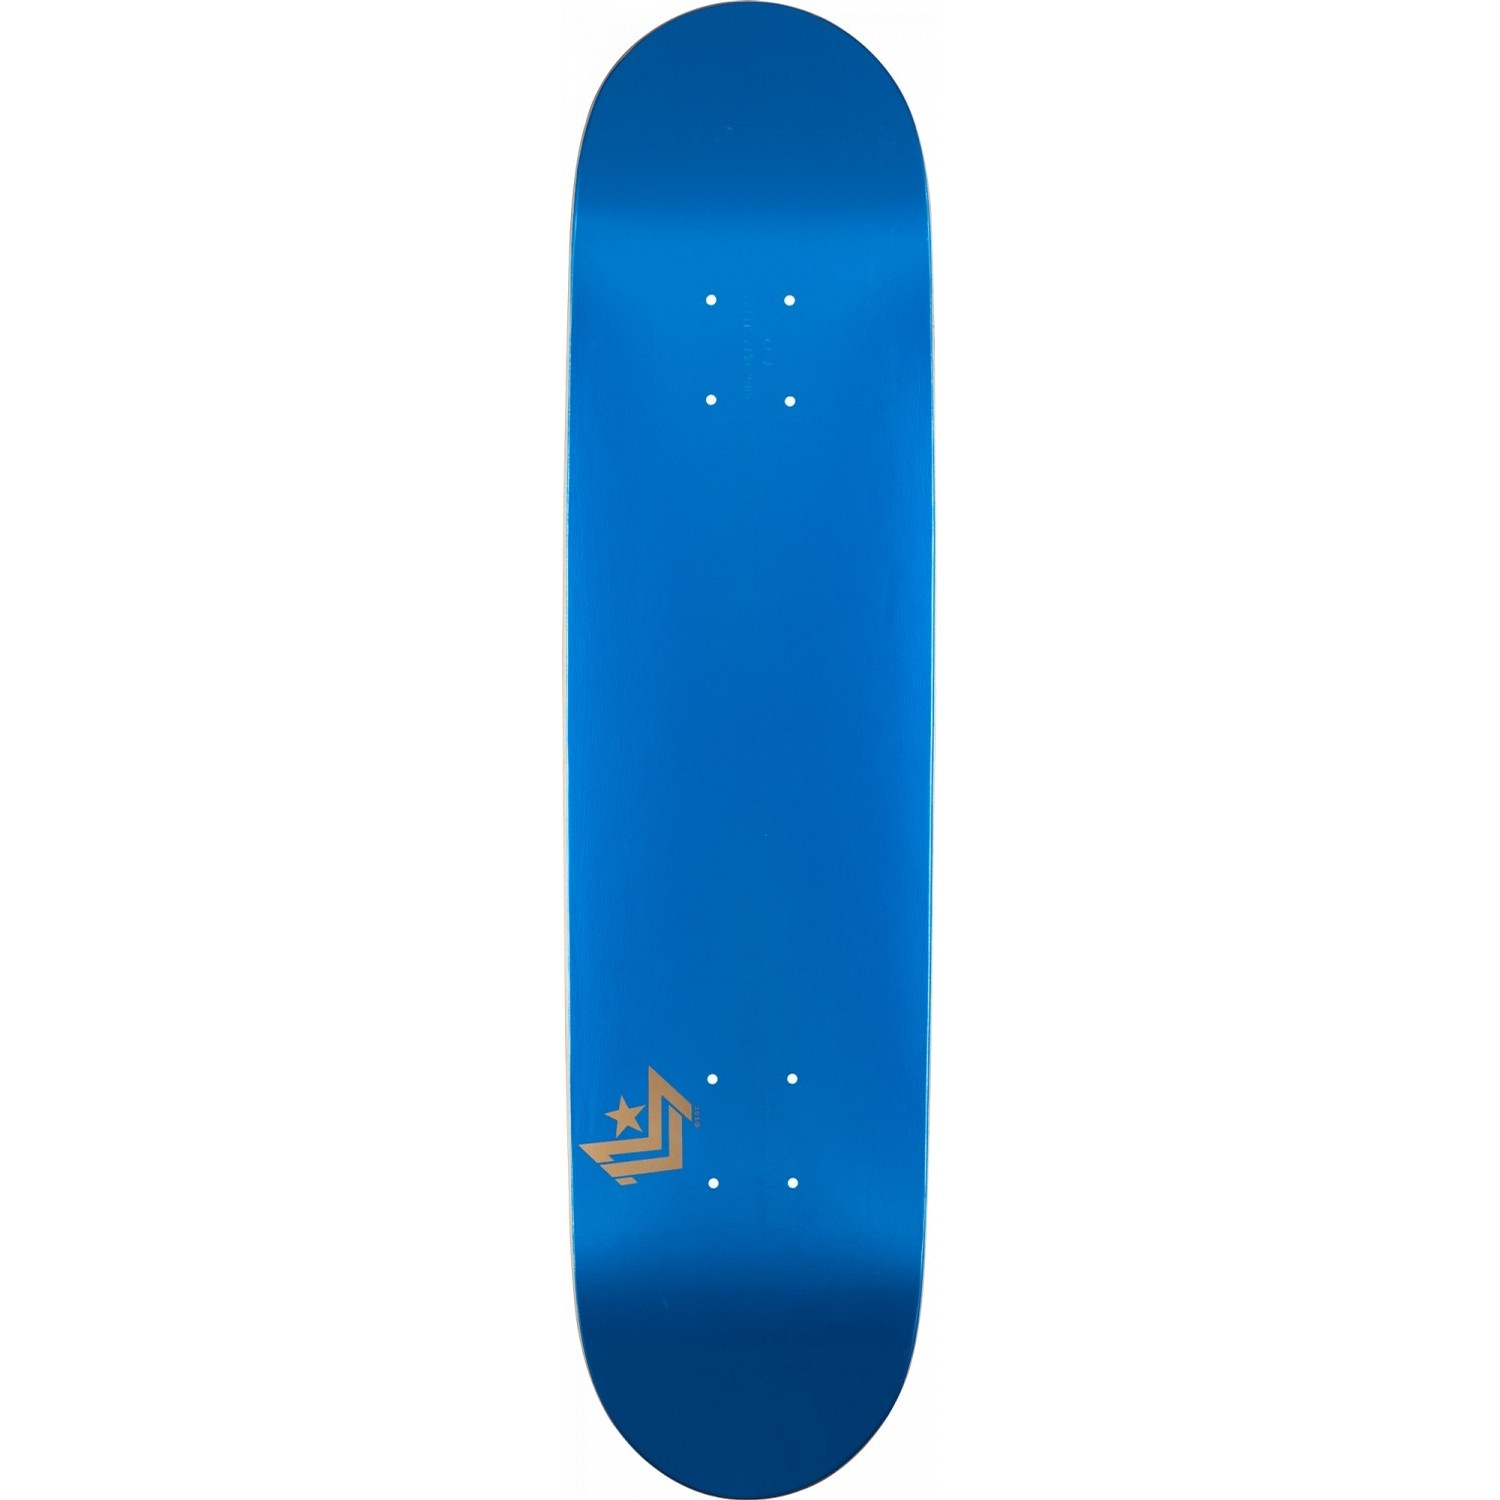 K15 Chevron Deck (Metallic Blue)